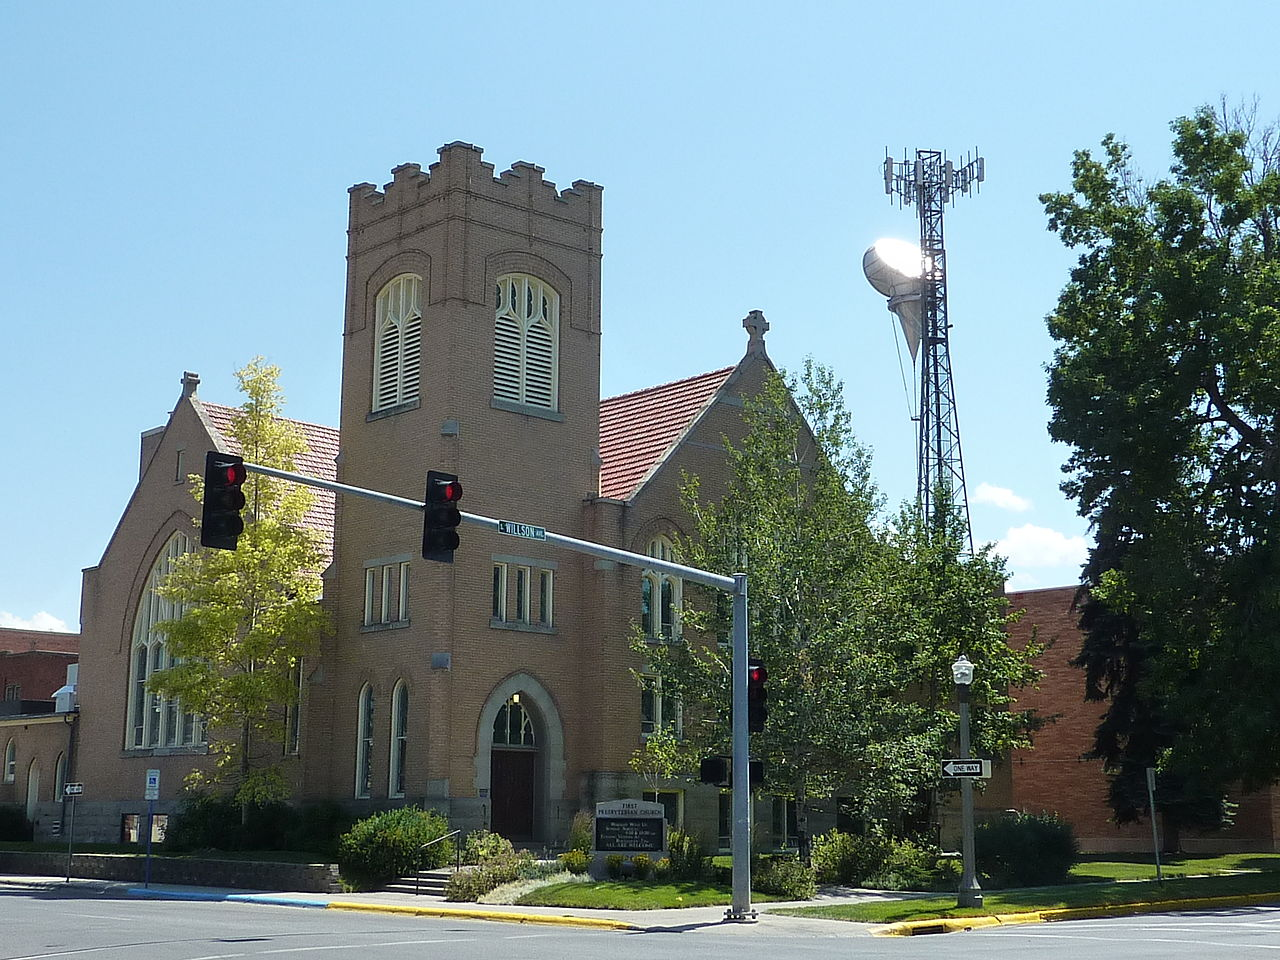 First Presbyterian Church was built in 1910 and is a fine example of Gothic Revival architecture.